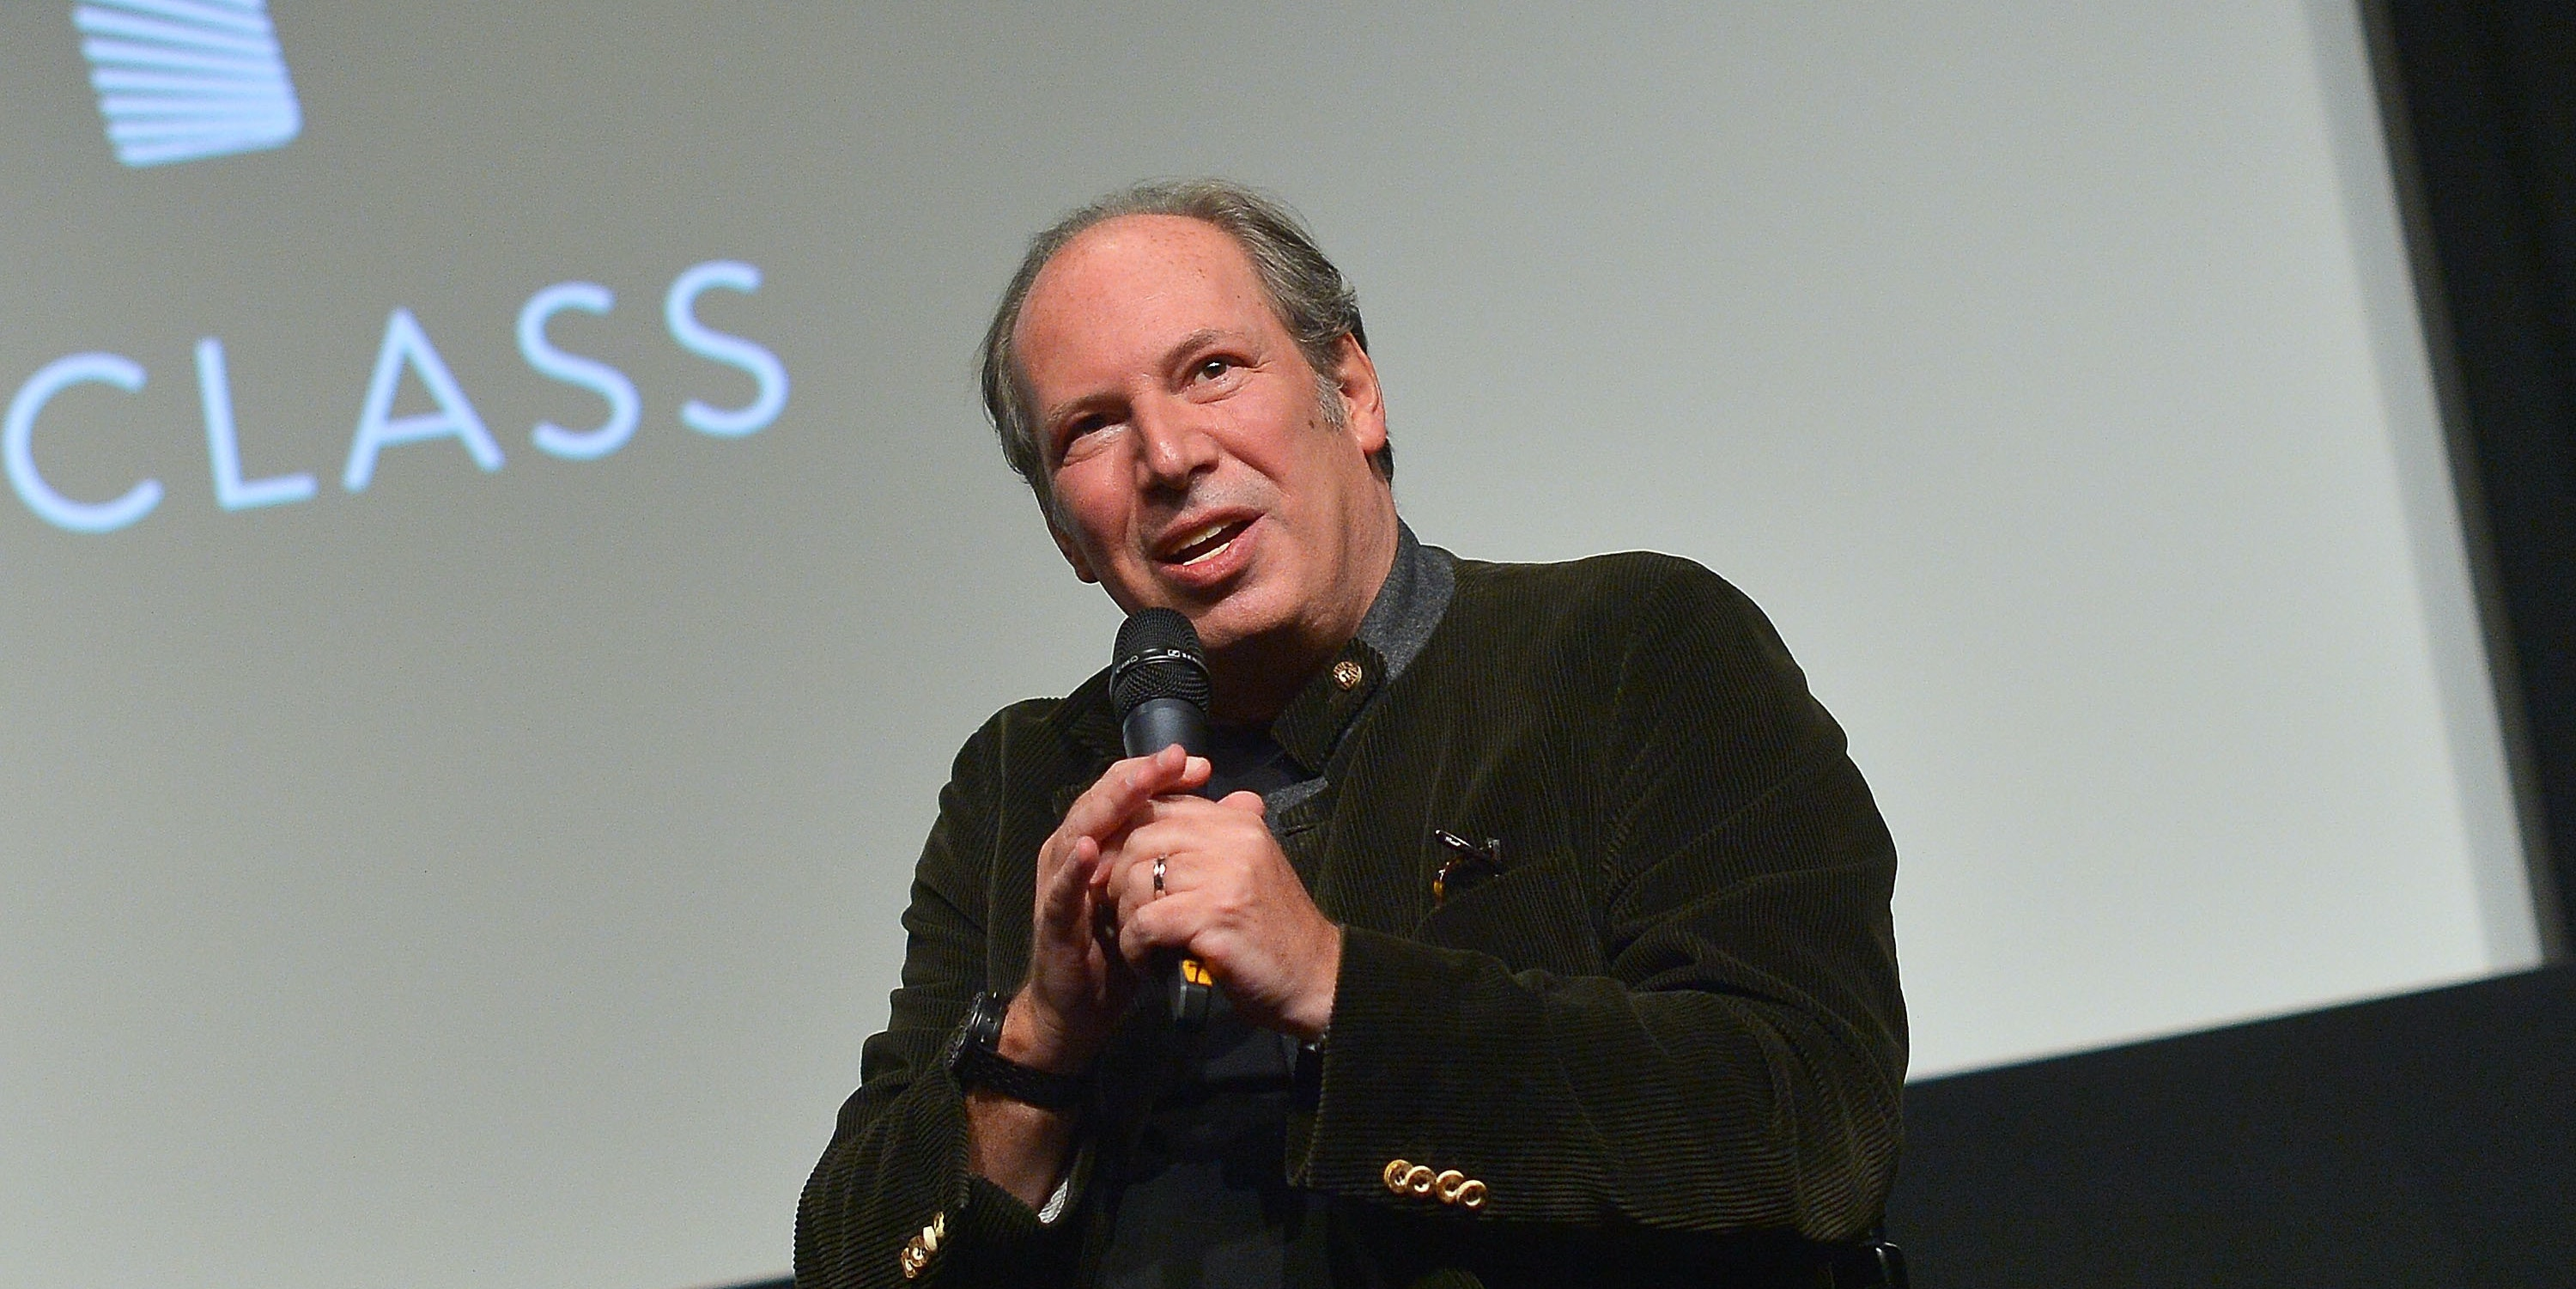 WEST HOLLYWOOD, CA - MARCH 15:  Composer Hans Zimmer attends Hans Zimmer's MasterClass Launch at The London Hotel on March 15, 2017 in West Hollywood, California.  (Photo by Charley Gallay/Getty Images for MasterClass)